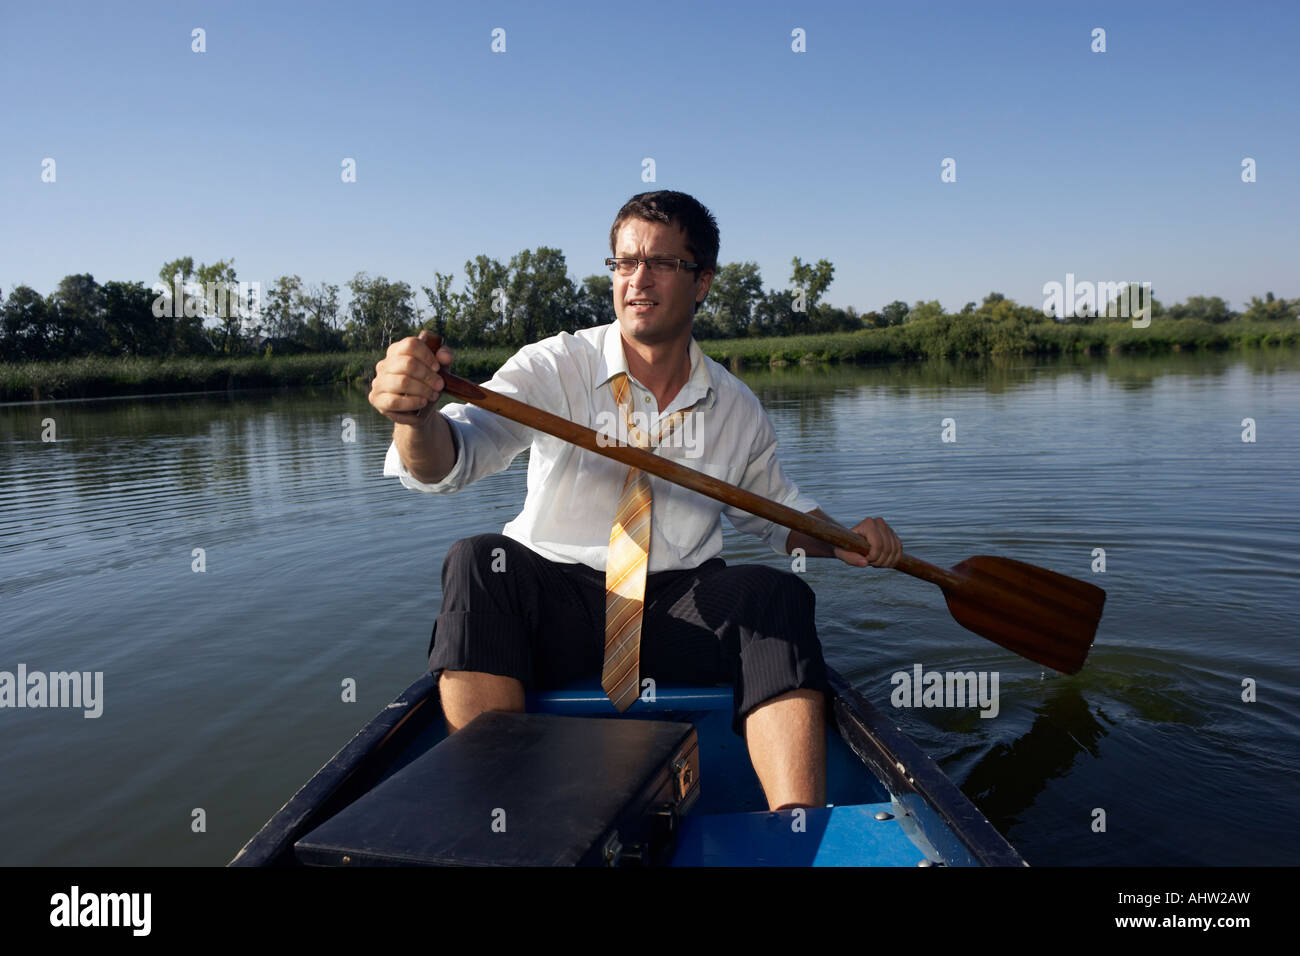 62744887fe Businessman rowing in canoe Stock Photo  14548704 - Alamy